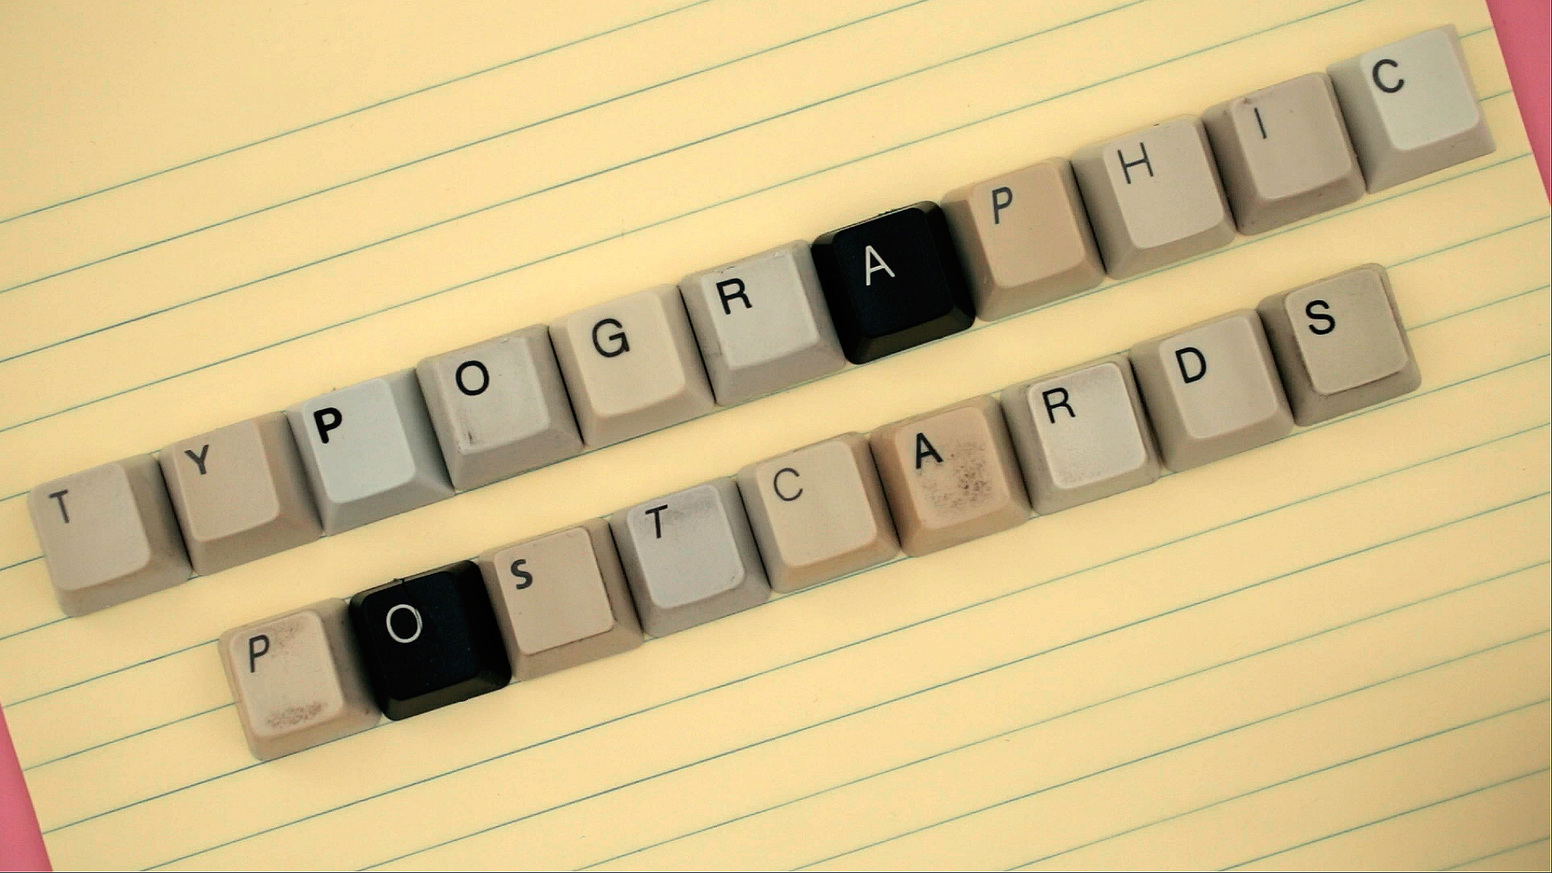 """This project is about creating the 27th Typographic Postcard/Sticker that says """"I WAS HERE"""" set in used keyboard keys."""